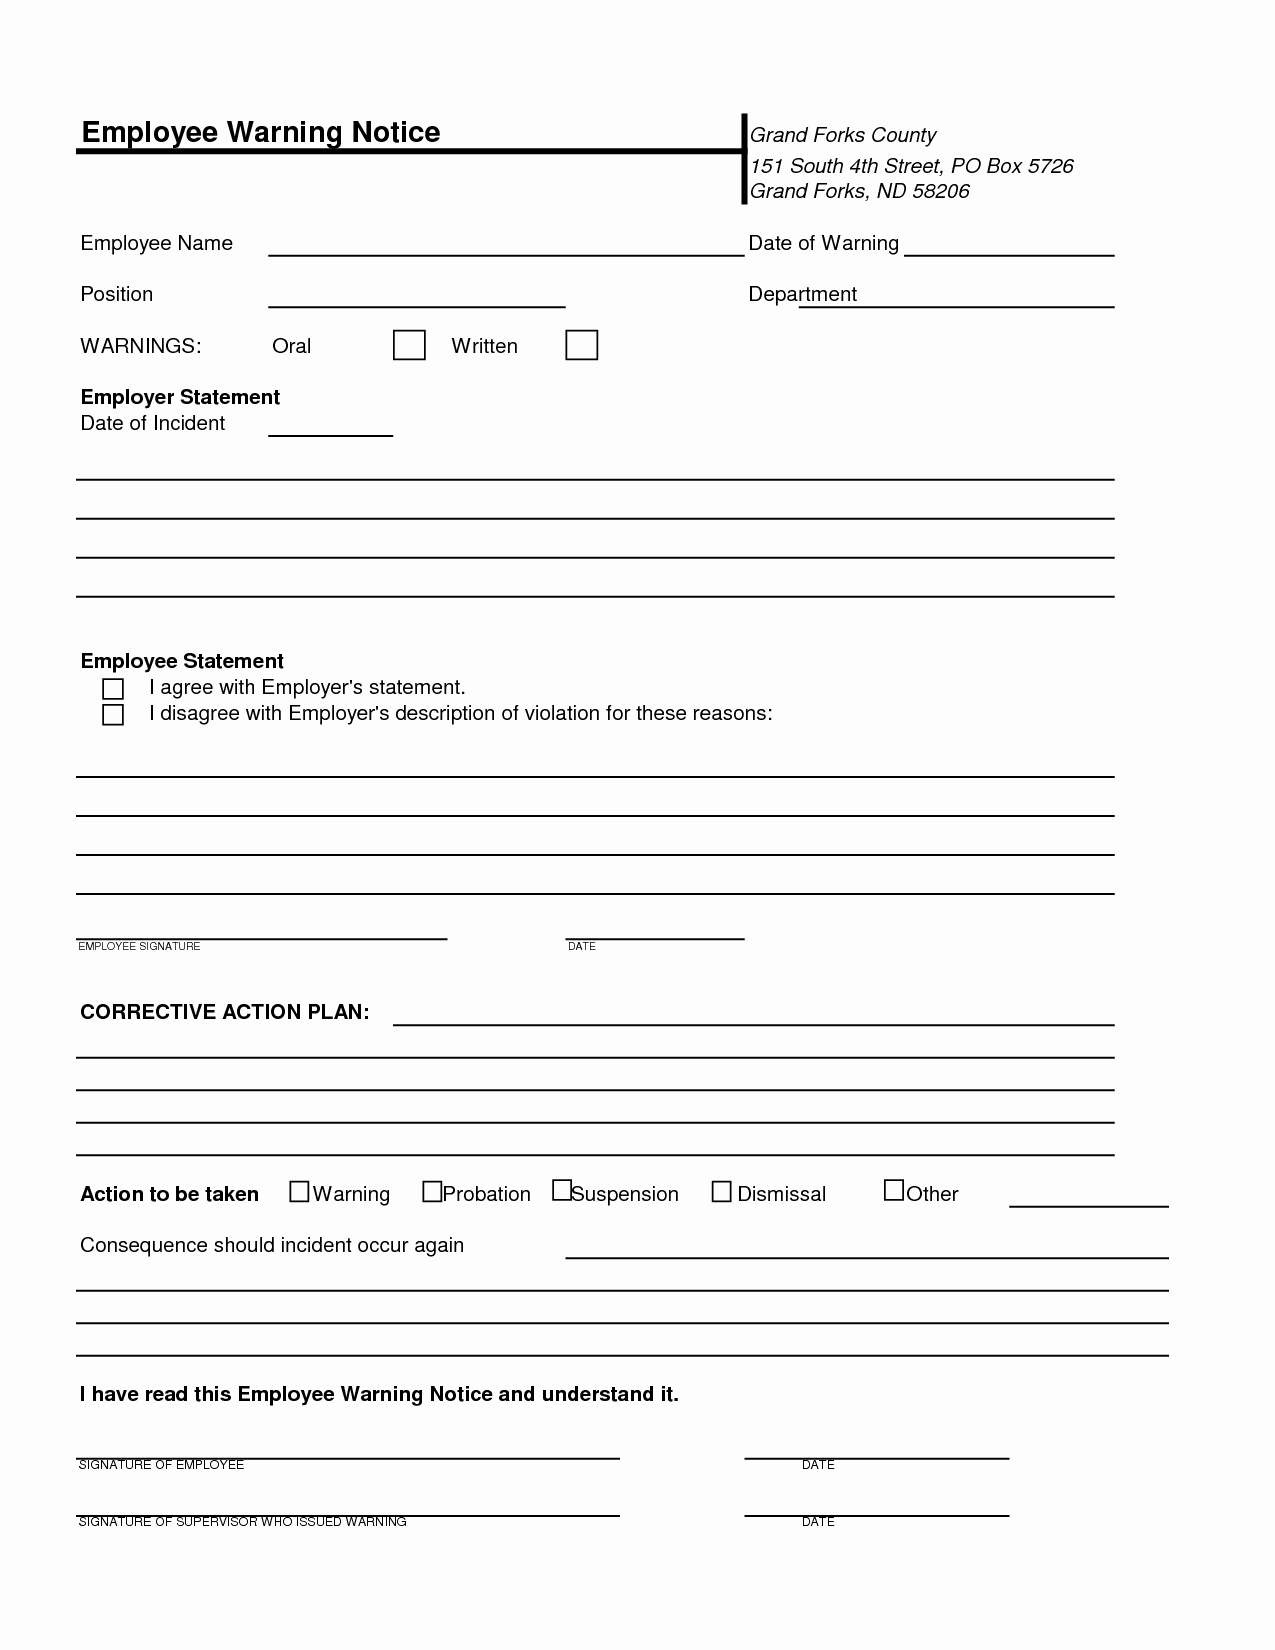 Employee Warning Notice Template Awesome Free Printable Employee Warning Notice